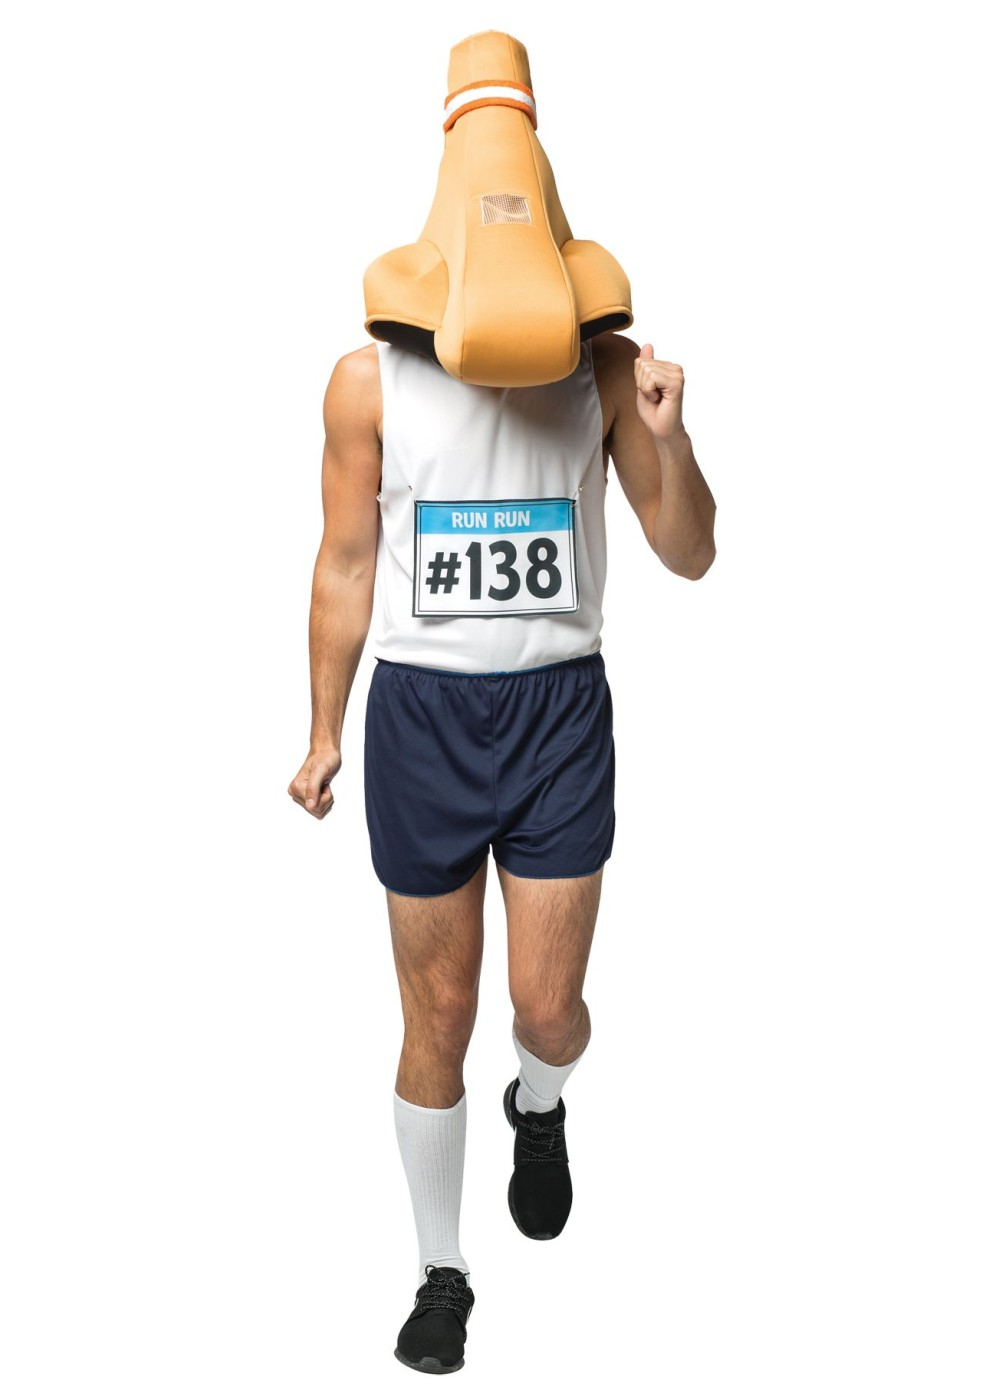 runny nose costume funny costumes